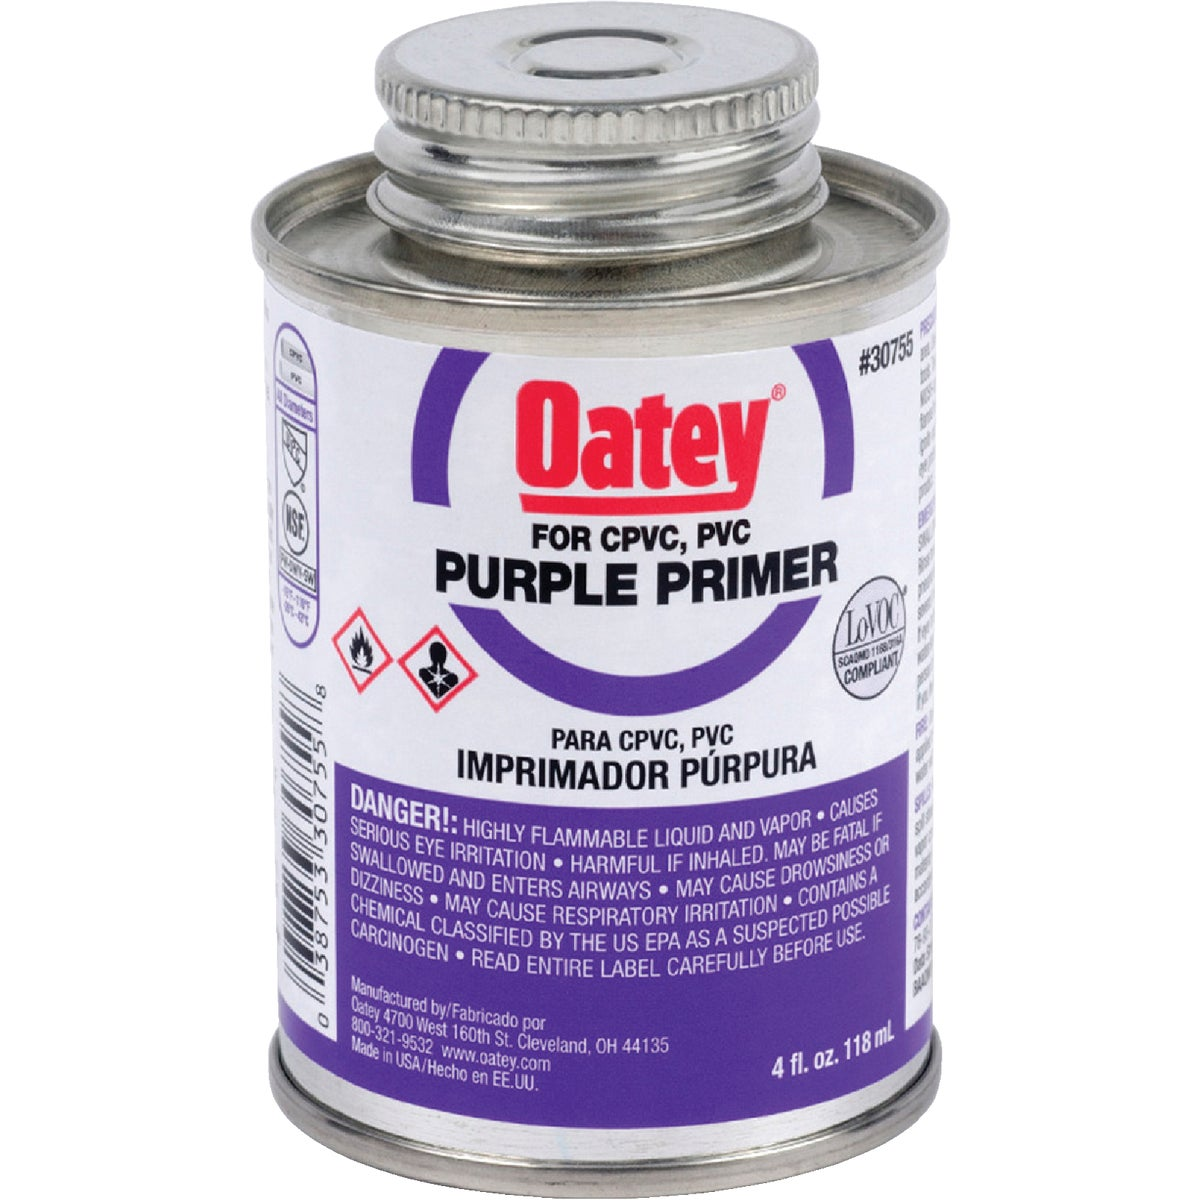 1/4PINT PURPLE PRIMER